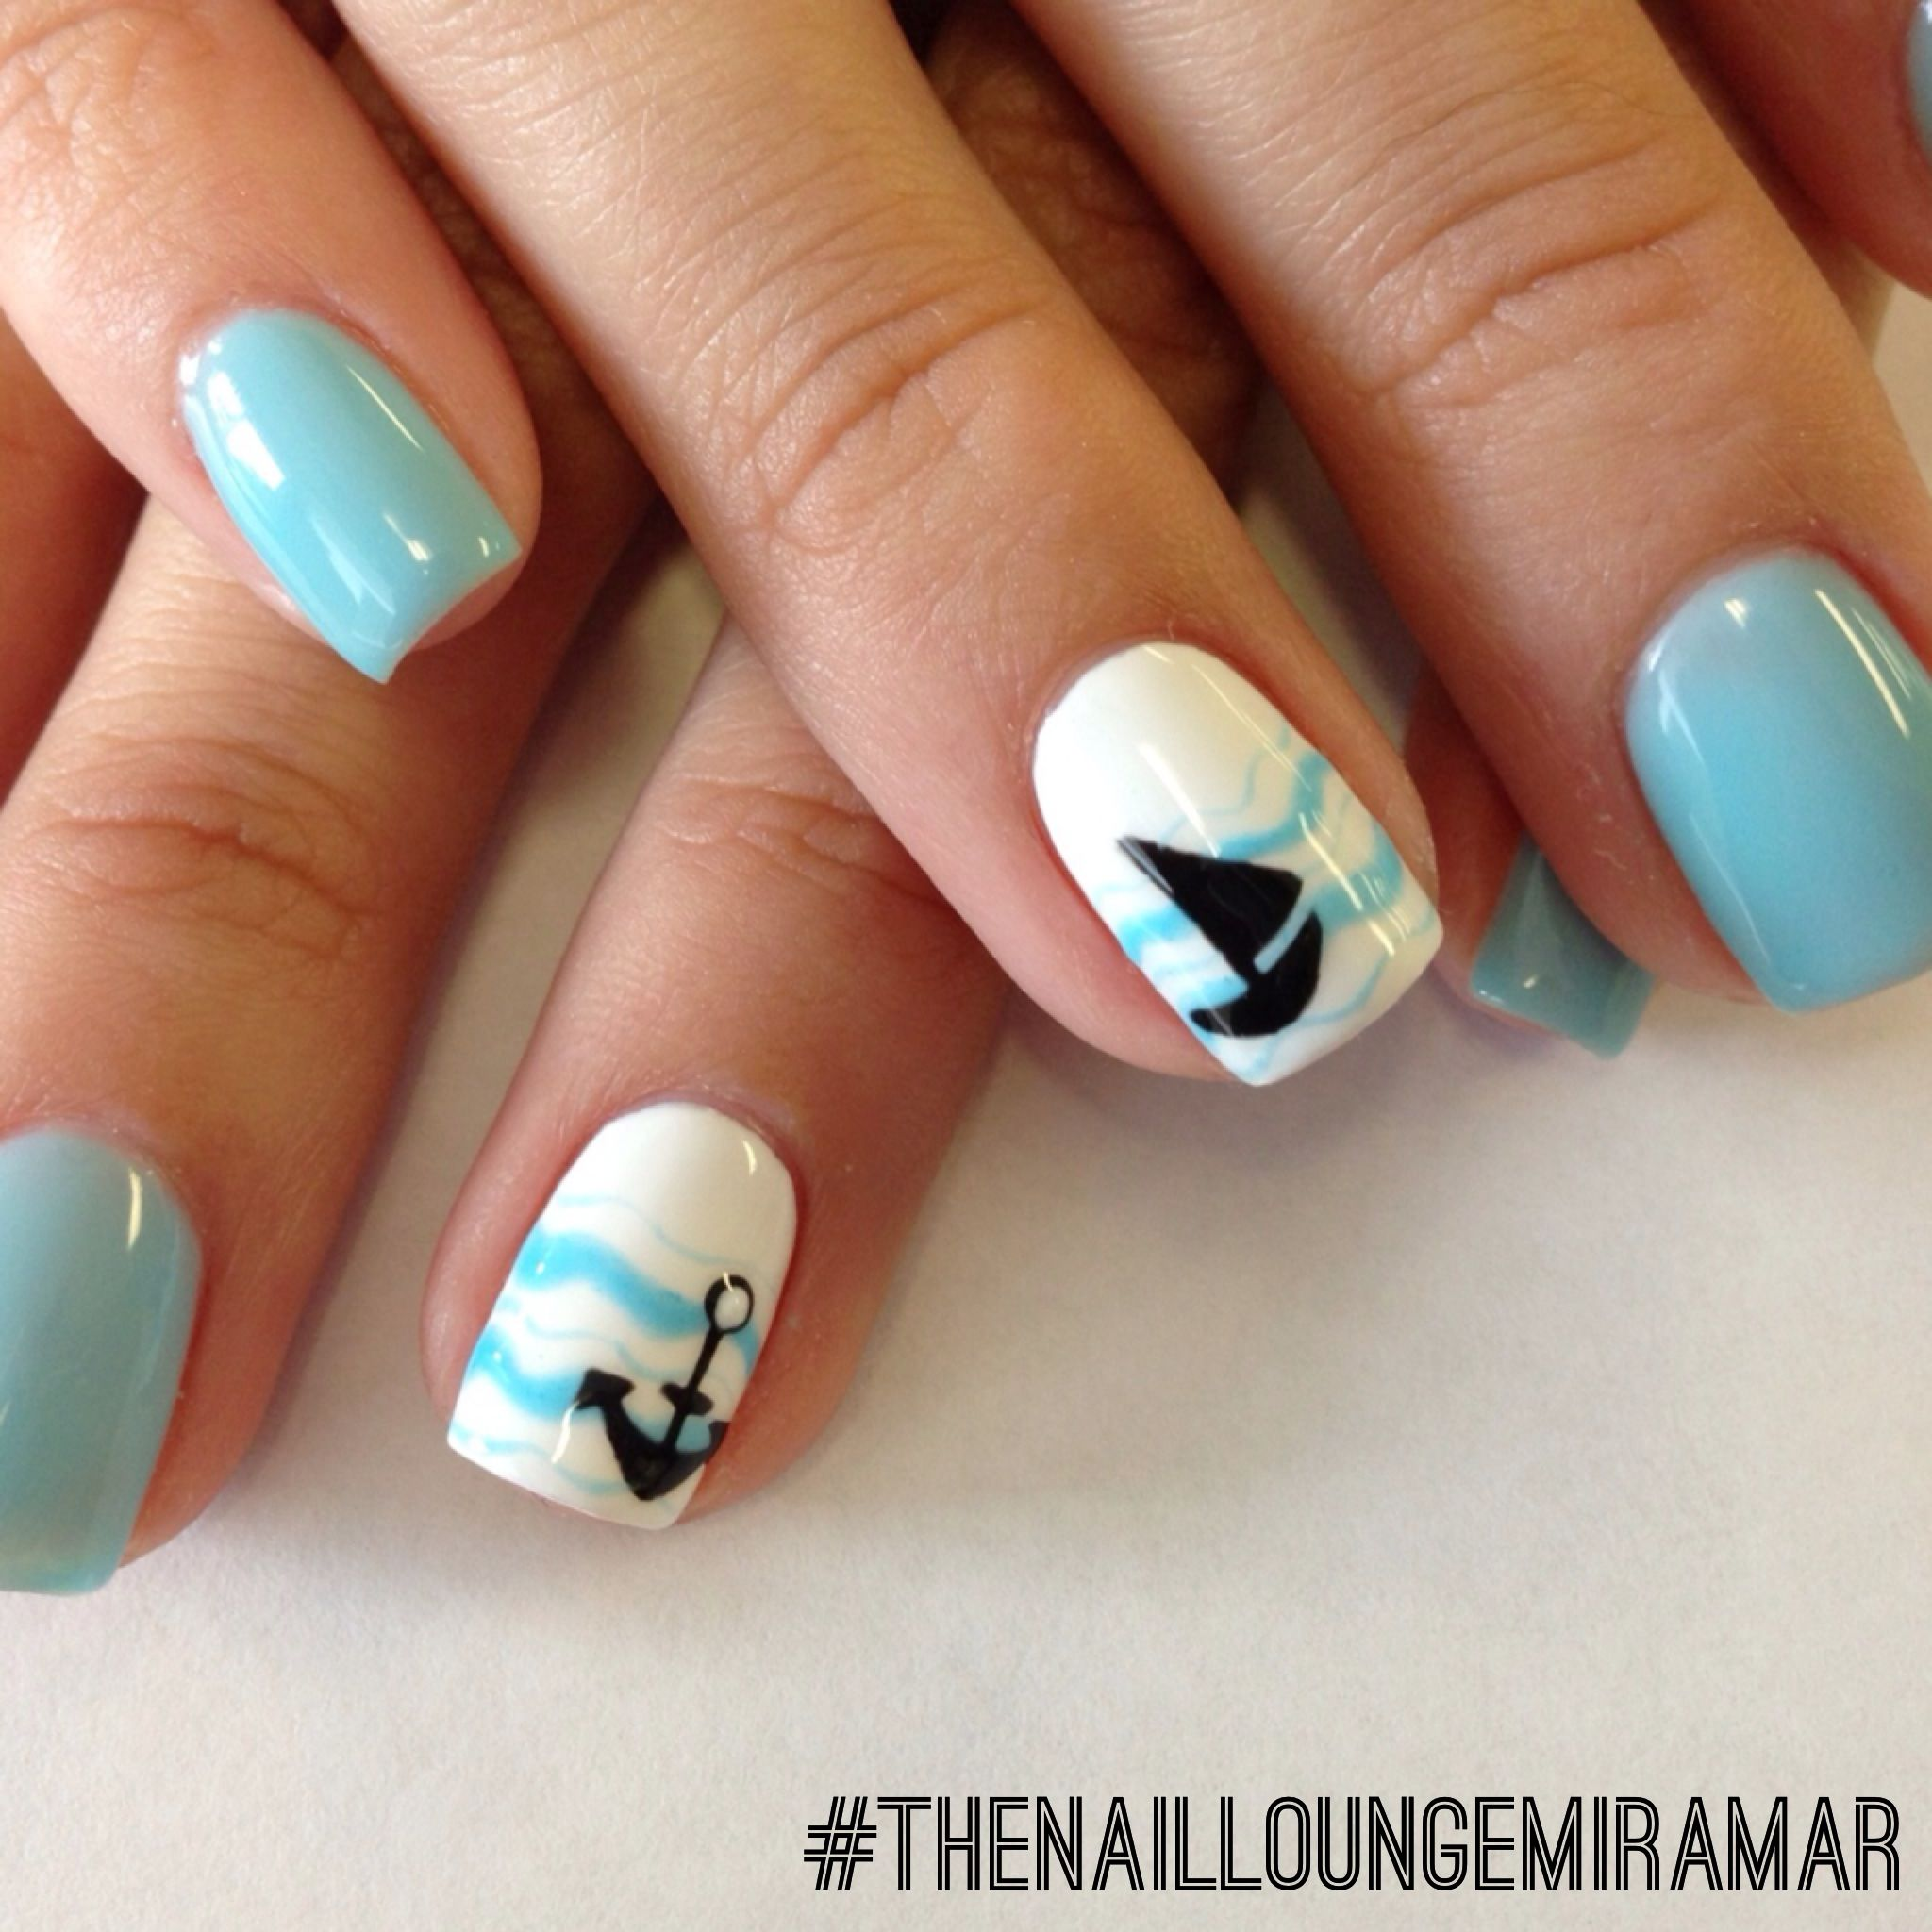 Blue anchor sailboat gel nail art | nails | Pinterest | Gel nail art ...